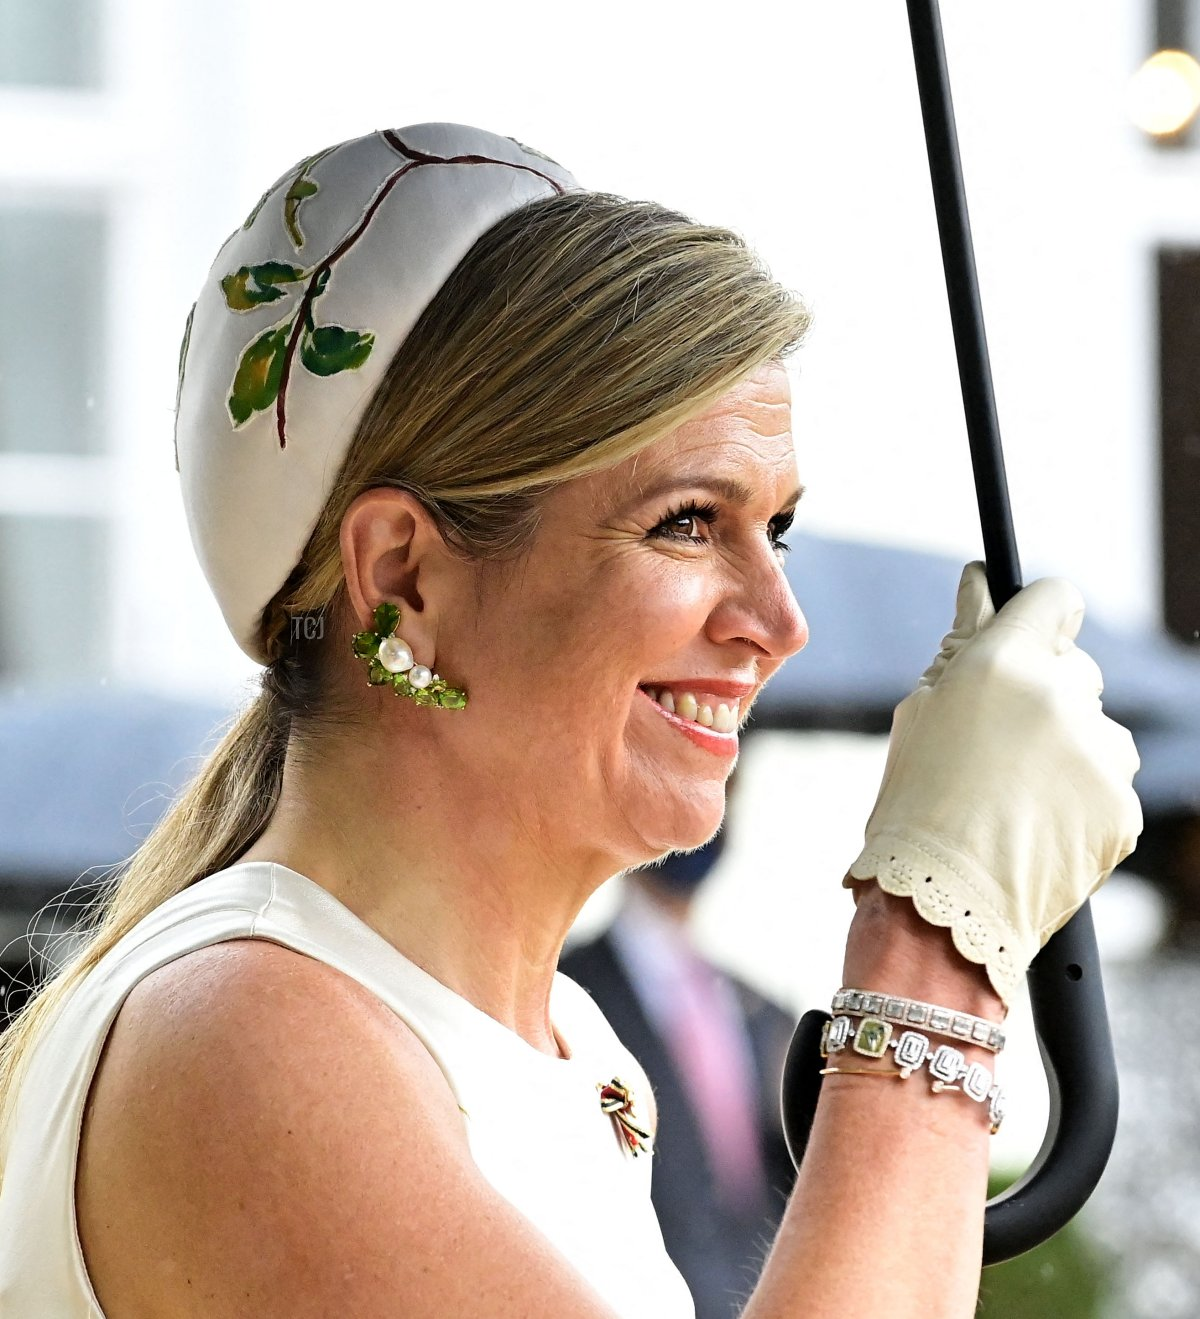 Queen Maxima of the Netherlands smiles as she attends an official welcoming ceremony at the Bellevue presidential palace in Berlin on July 5, 2021